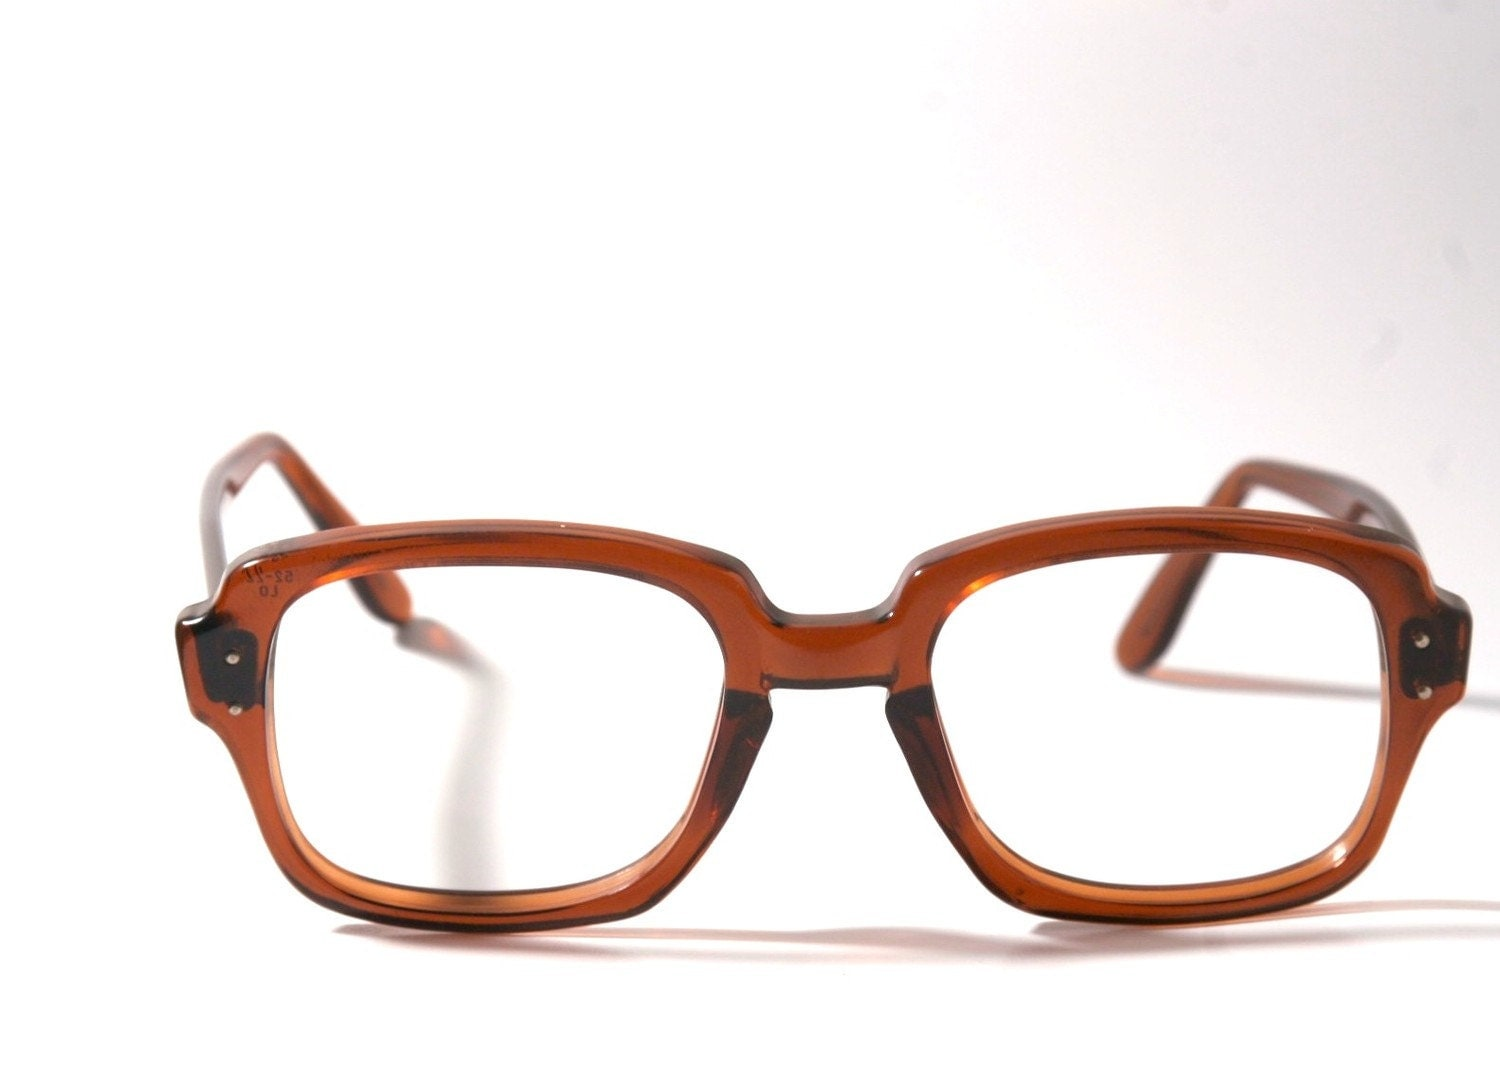 Eyeglass Frames For Military : Brown USS GI Eyeglasses Frames 50-20 Large Army issue